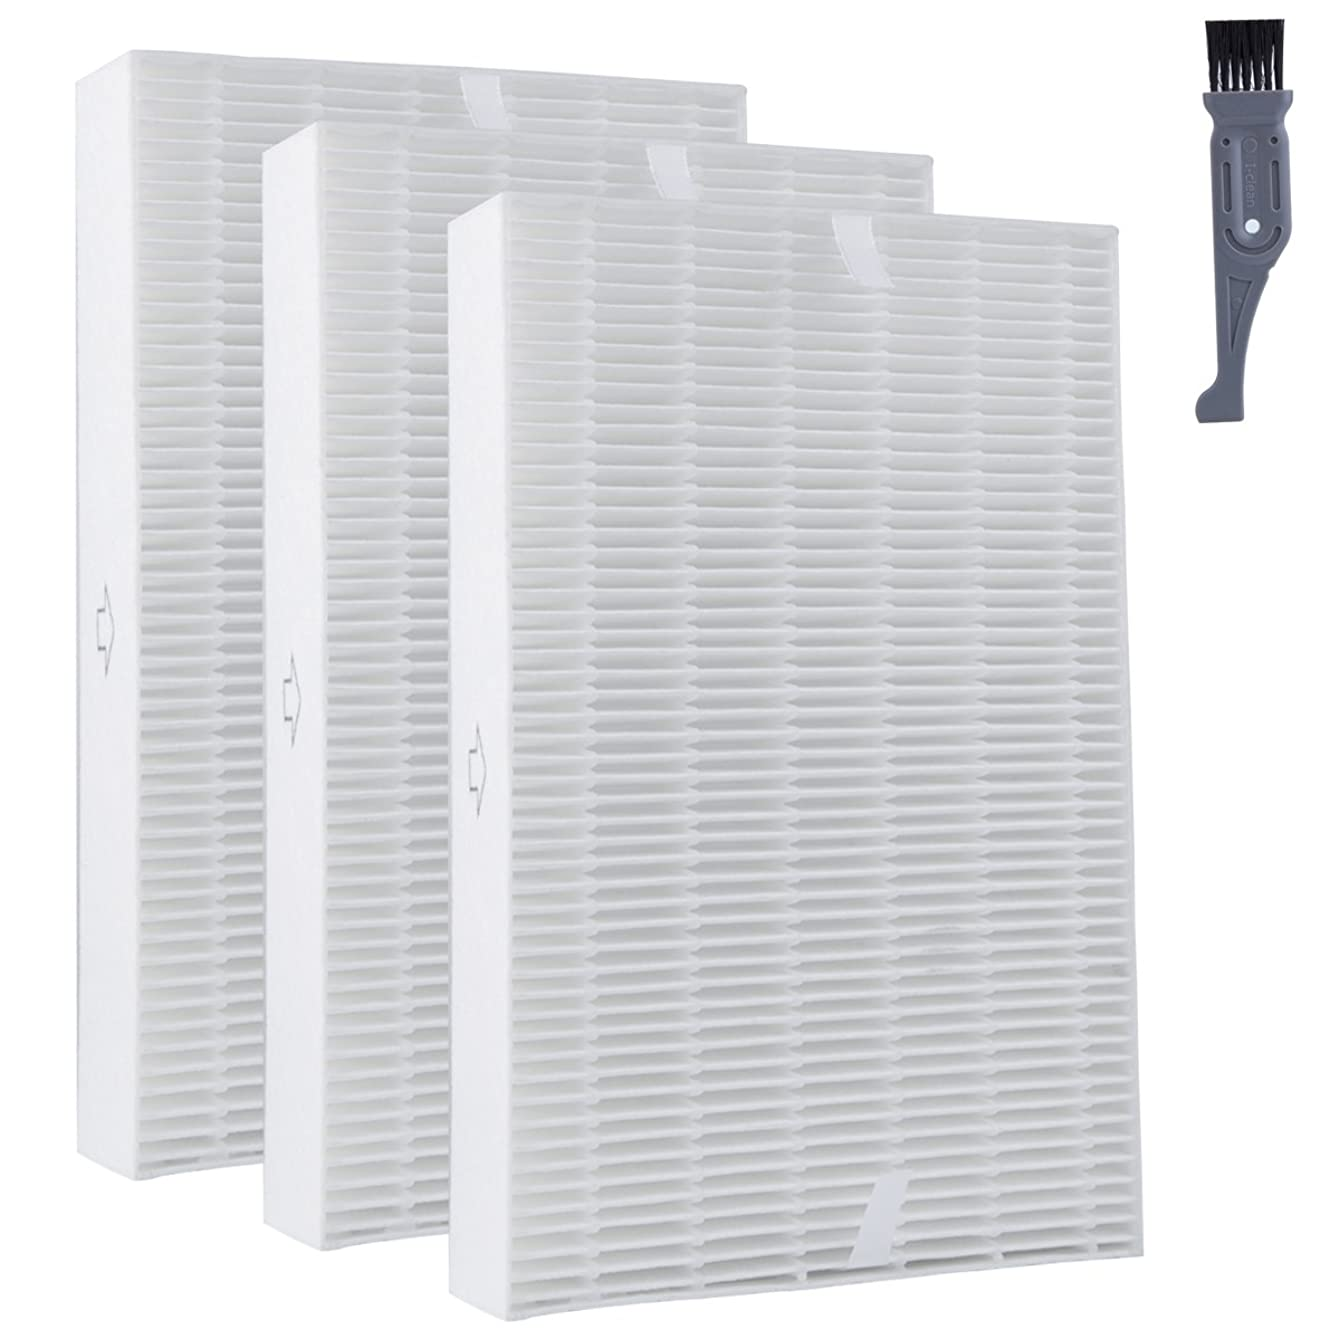 I clean Honeywell Filter R HEPA Replacement Filter - 3 Pack, HRF-R3 Air Purifier HEPA Filter